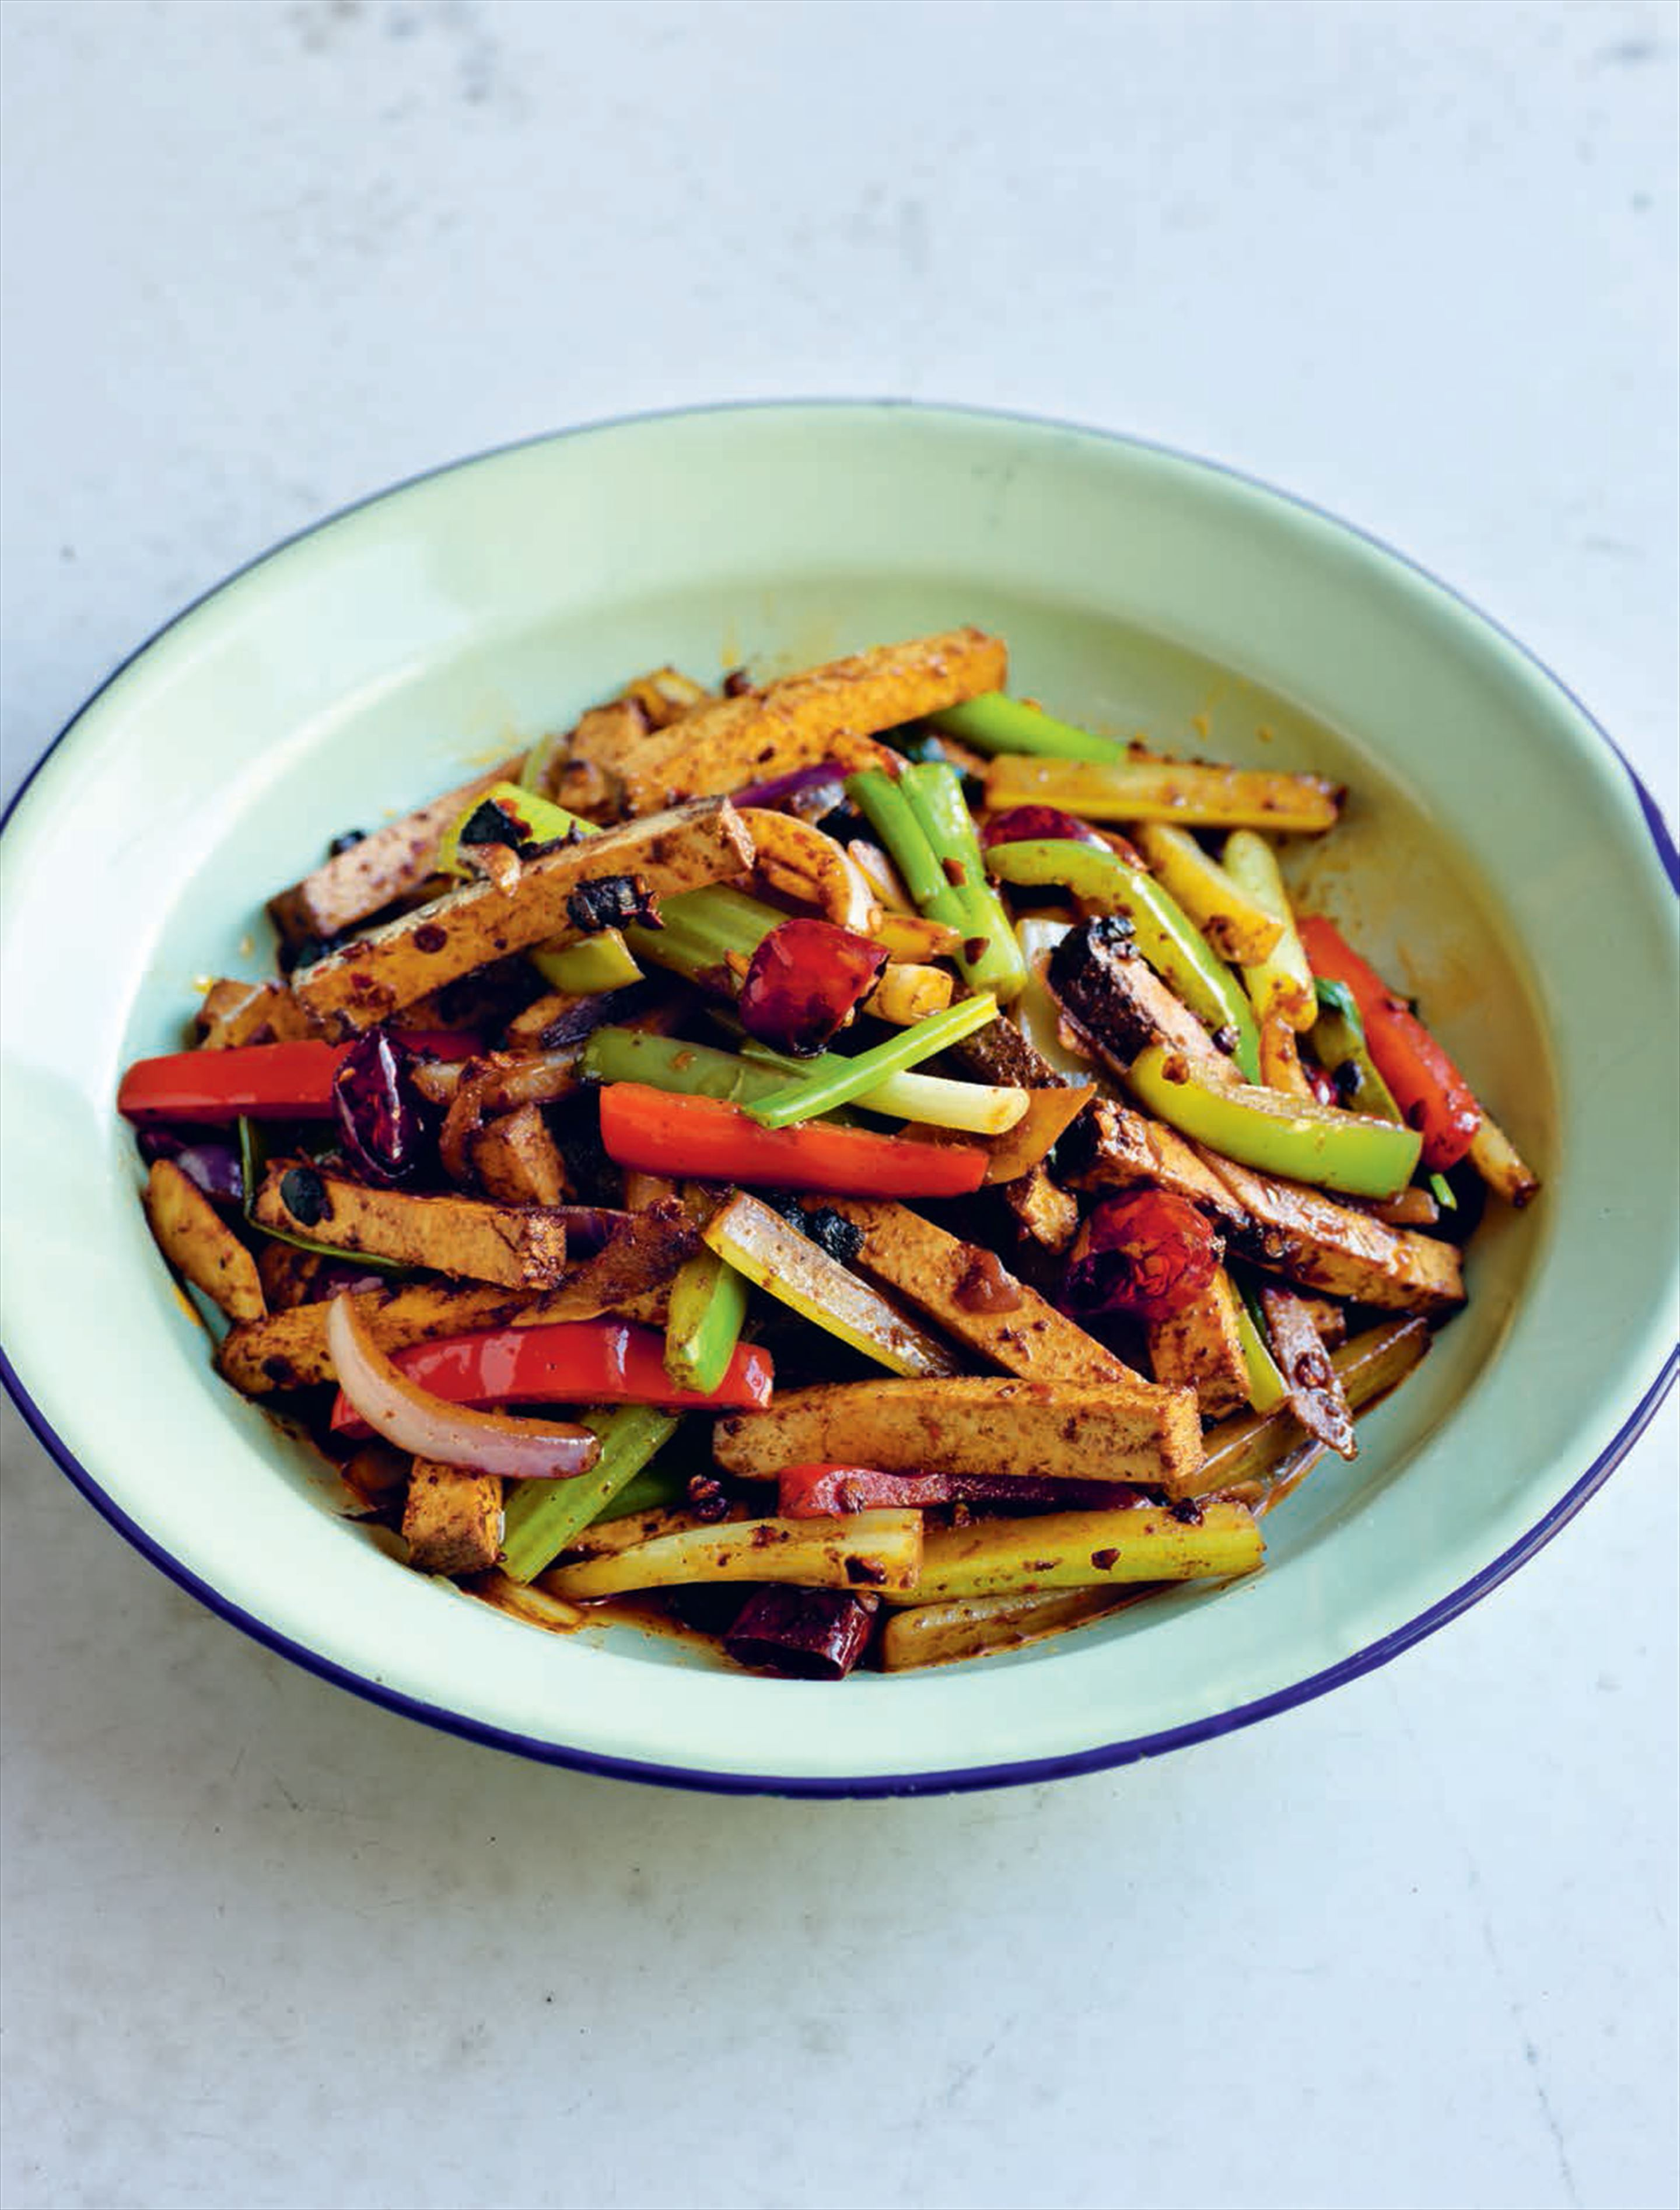 Stir-fried tofu with black bean and chilli